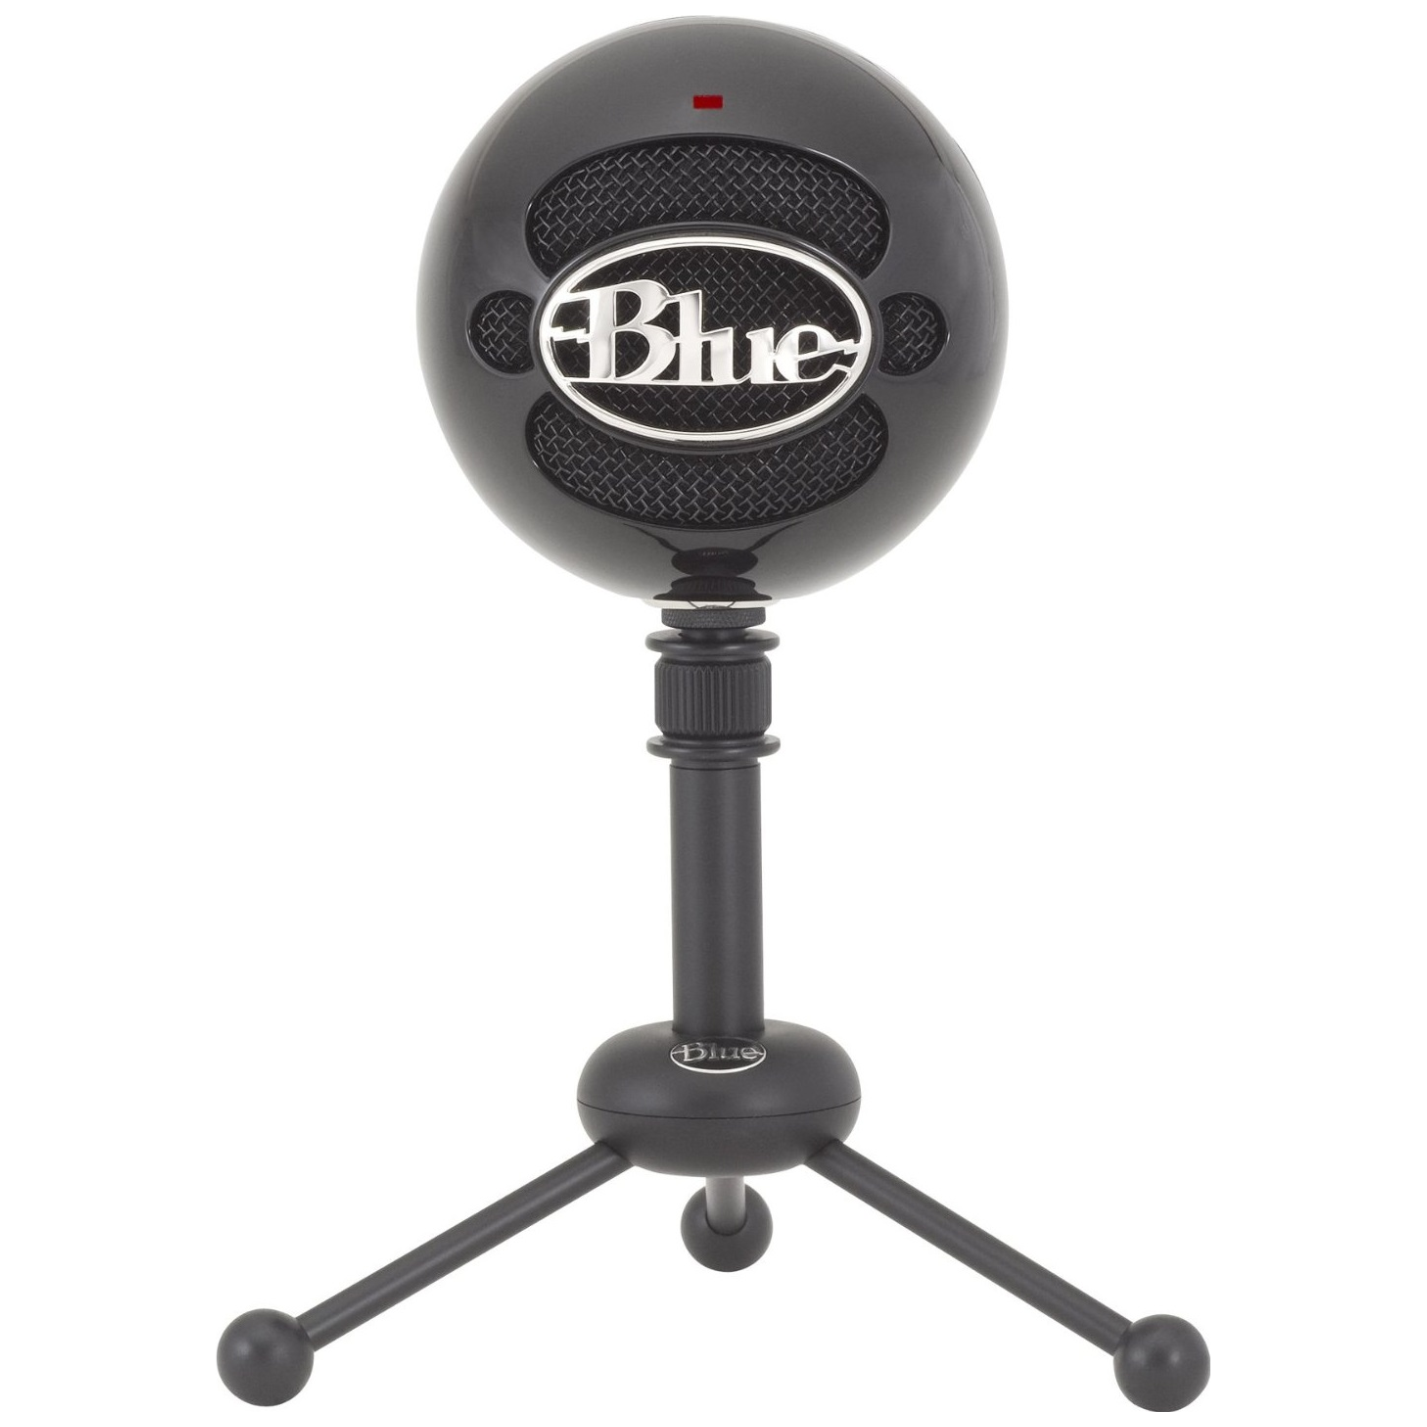 blue microphones snowball gloss black usb microphone 1912 ple computers online australia. Black Bedroom Furniture Sets. Home Design Ideas